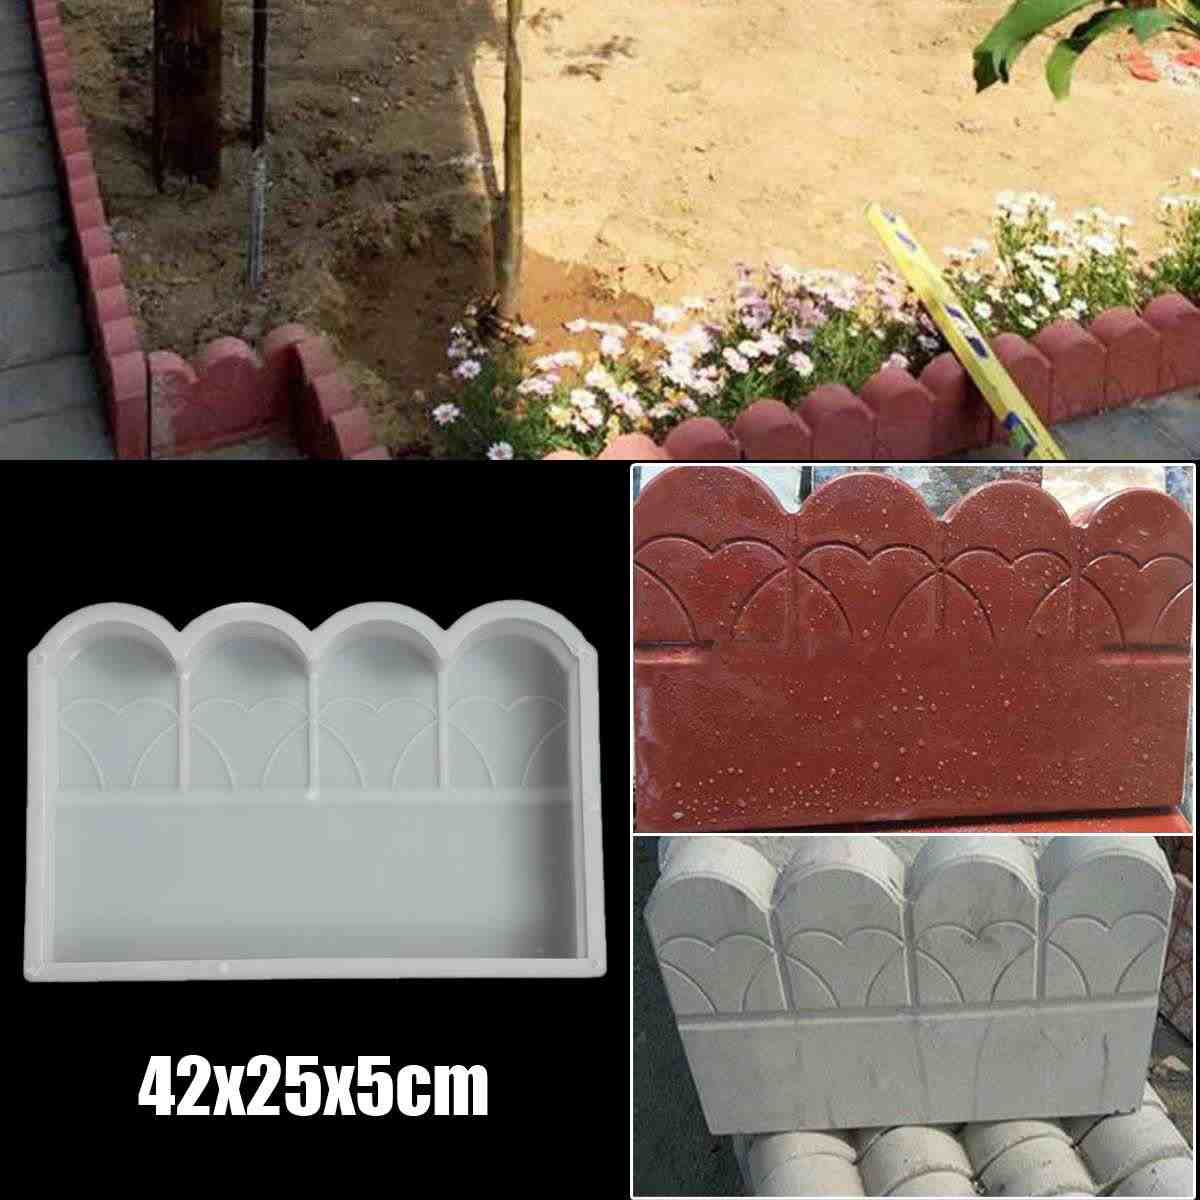 Plastic Making DIY Paving Mould Home Garden Floor Road Concrete Molds Stone Brick Path Mold Buildings Accessories 42x25x5cm